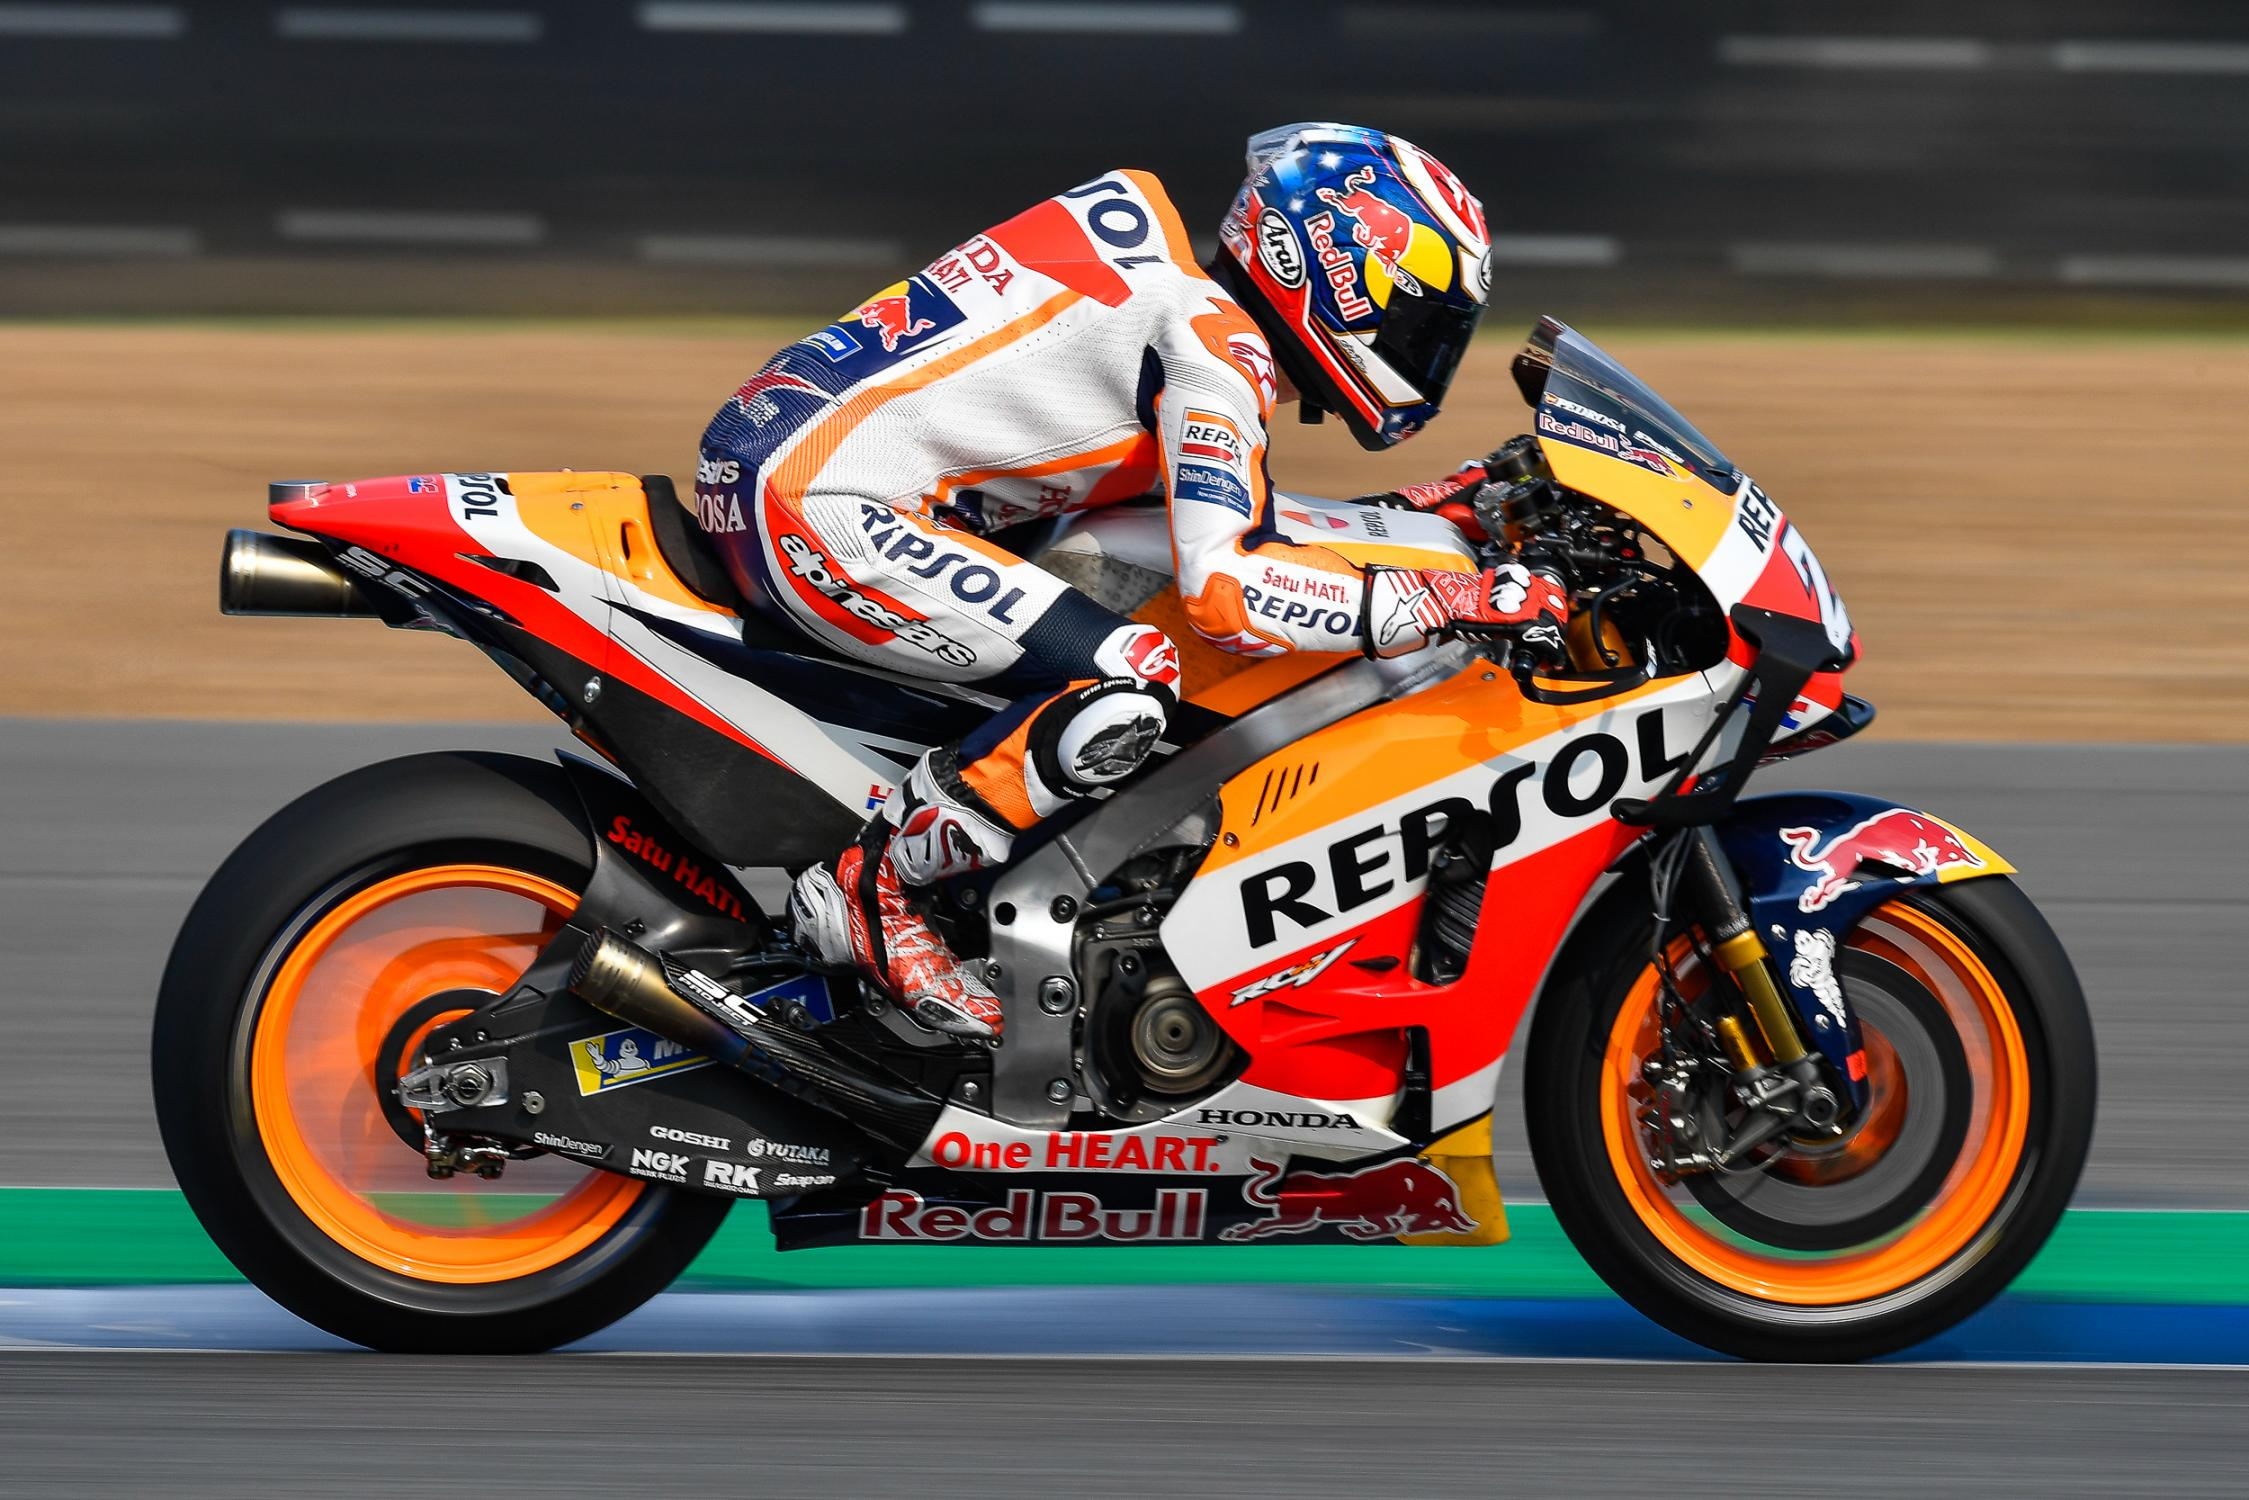 26-dani-pedrosa-esp_ds52436.gallery_full_top_fullscreen.jpg